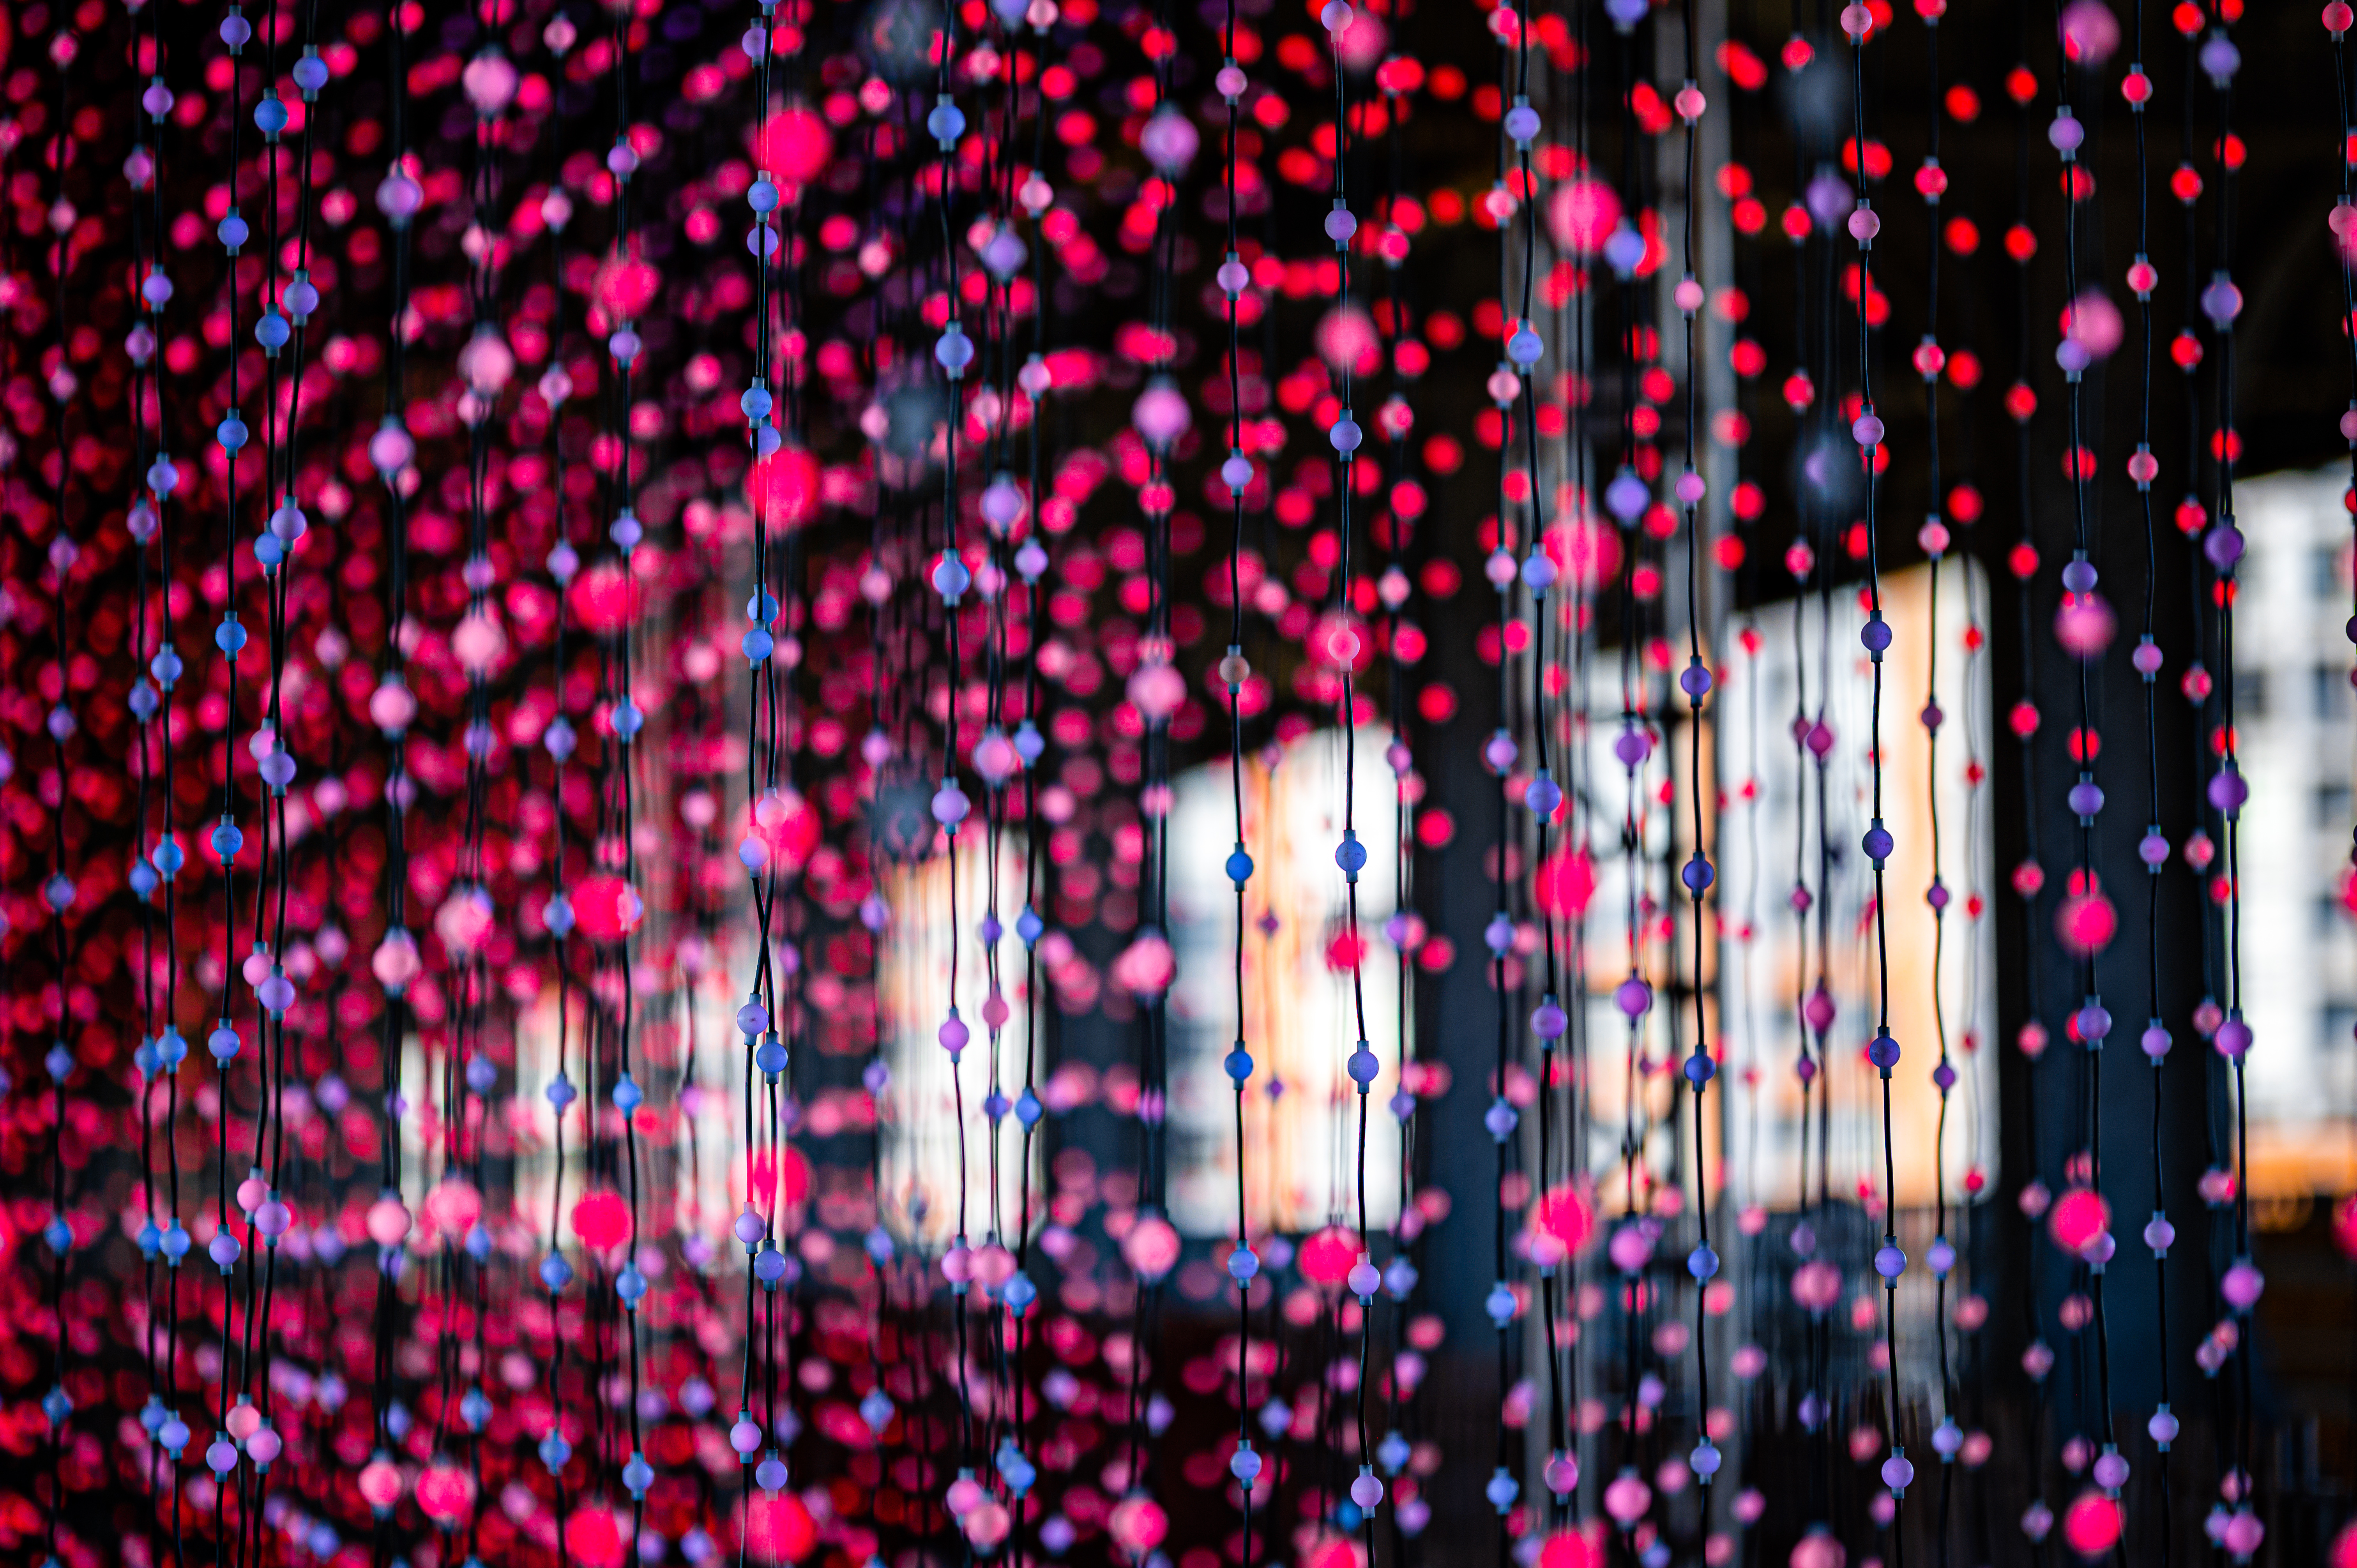 147165 download wallpaper Miscellanea, Miscellaneous, Garlands, Garland, Lights, Multicolored, Motley, Decoration, Glow screensavers and pictures for free